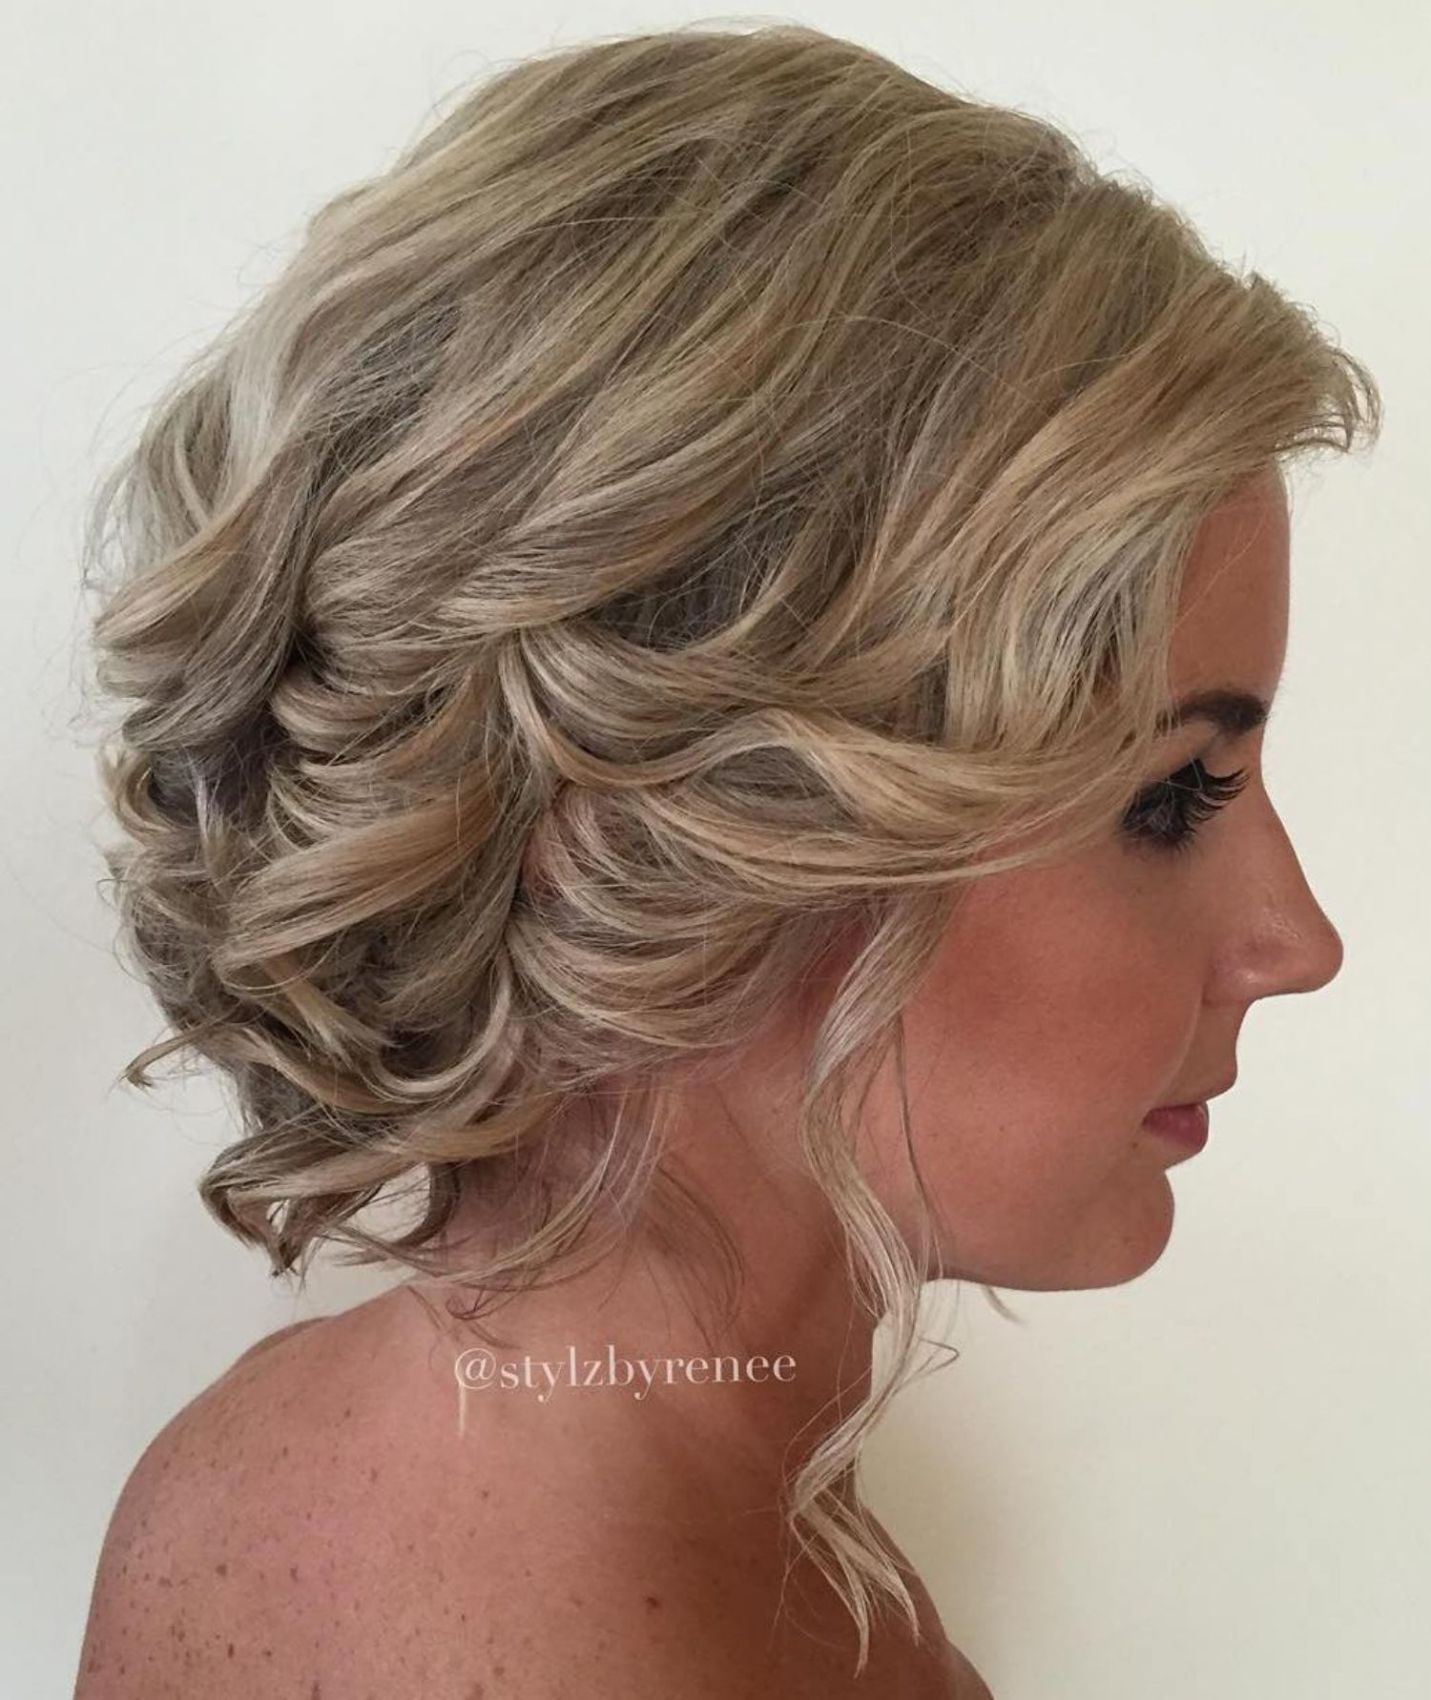 60 creative updo ideas for short hair | hair | short hair